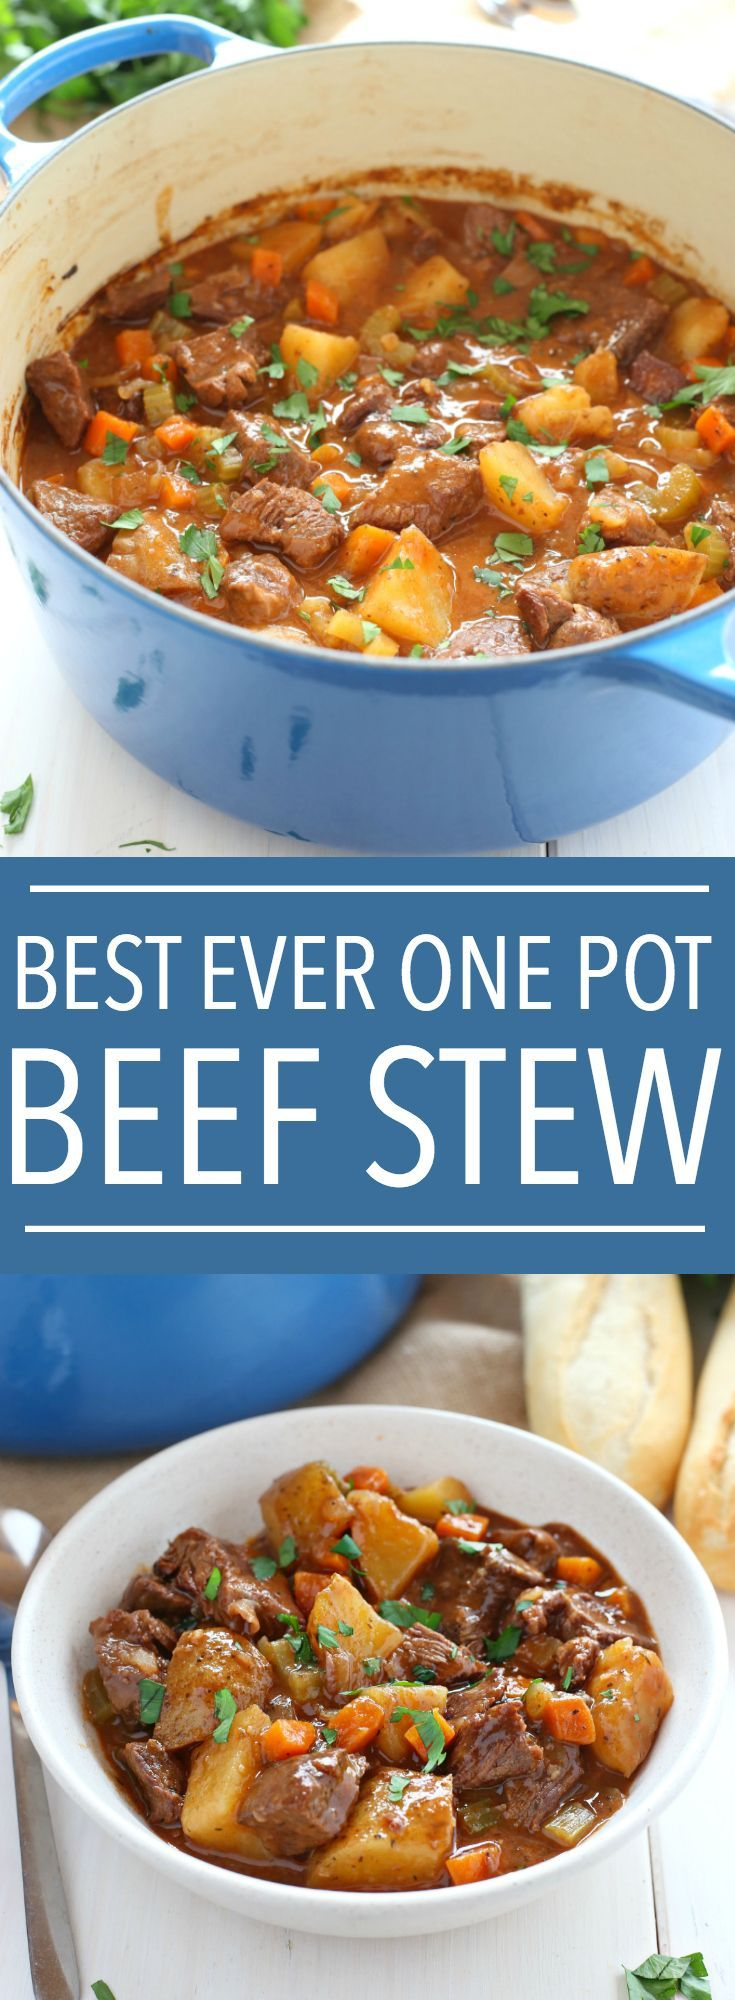 748 best Beef Recipe Love images on Pinterest | Cooker recipes, Easy ...